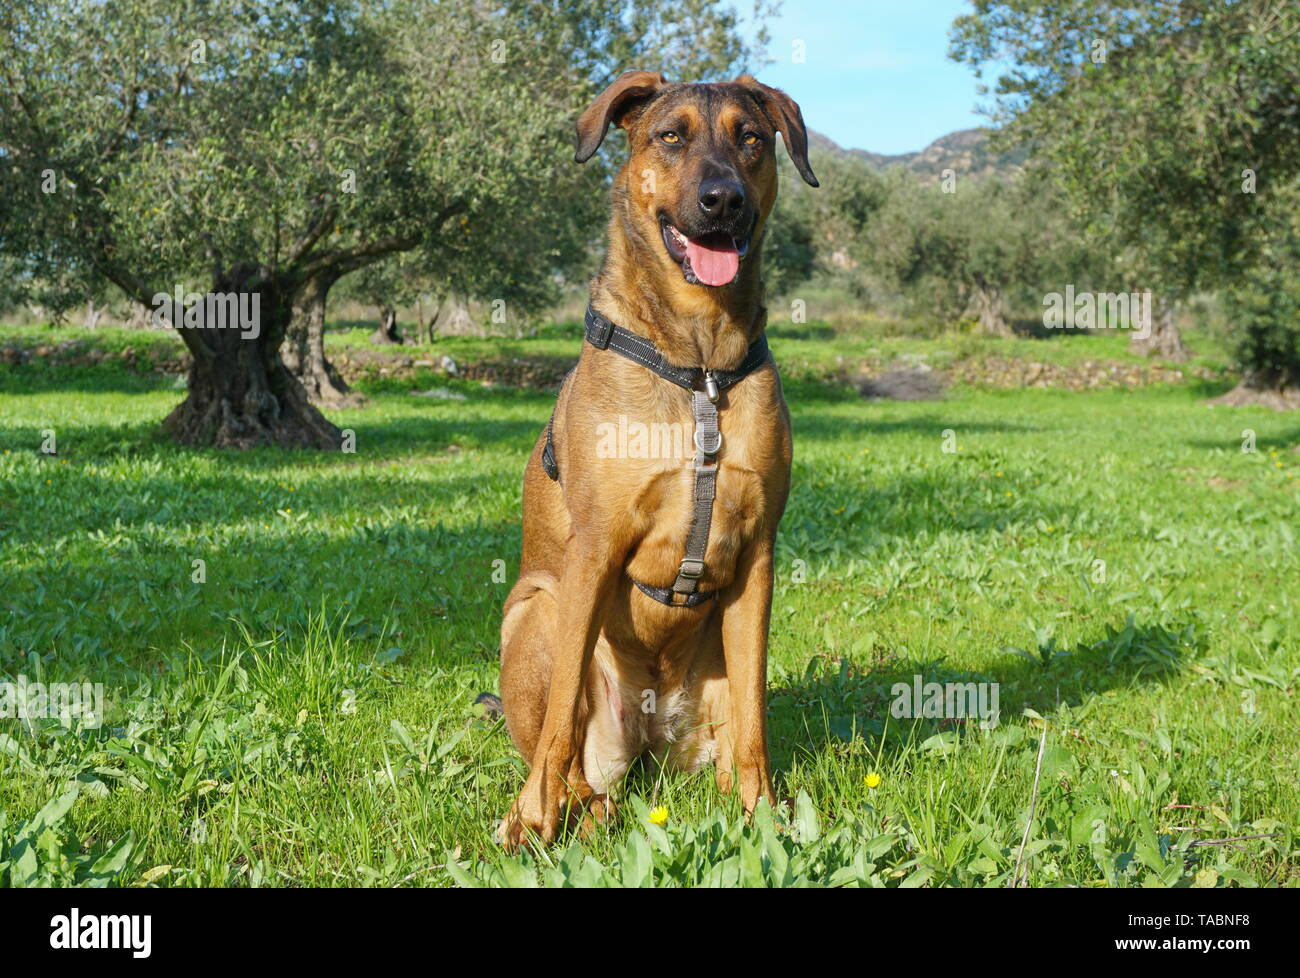 Proud dog sitting in the grass in a field of olive trees, Malinois Labrador mixed-breed dog, Spain - Stock Image